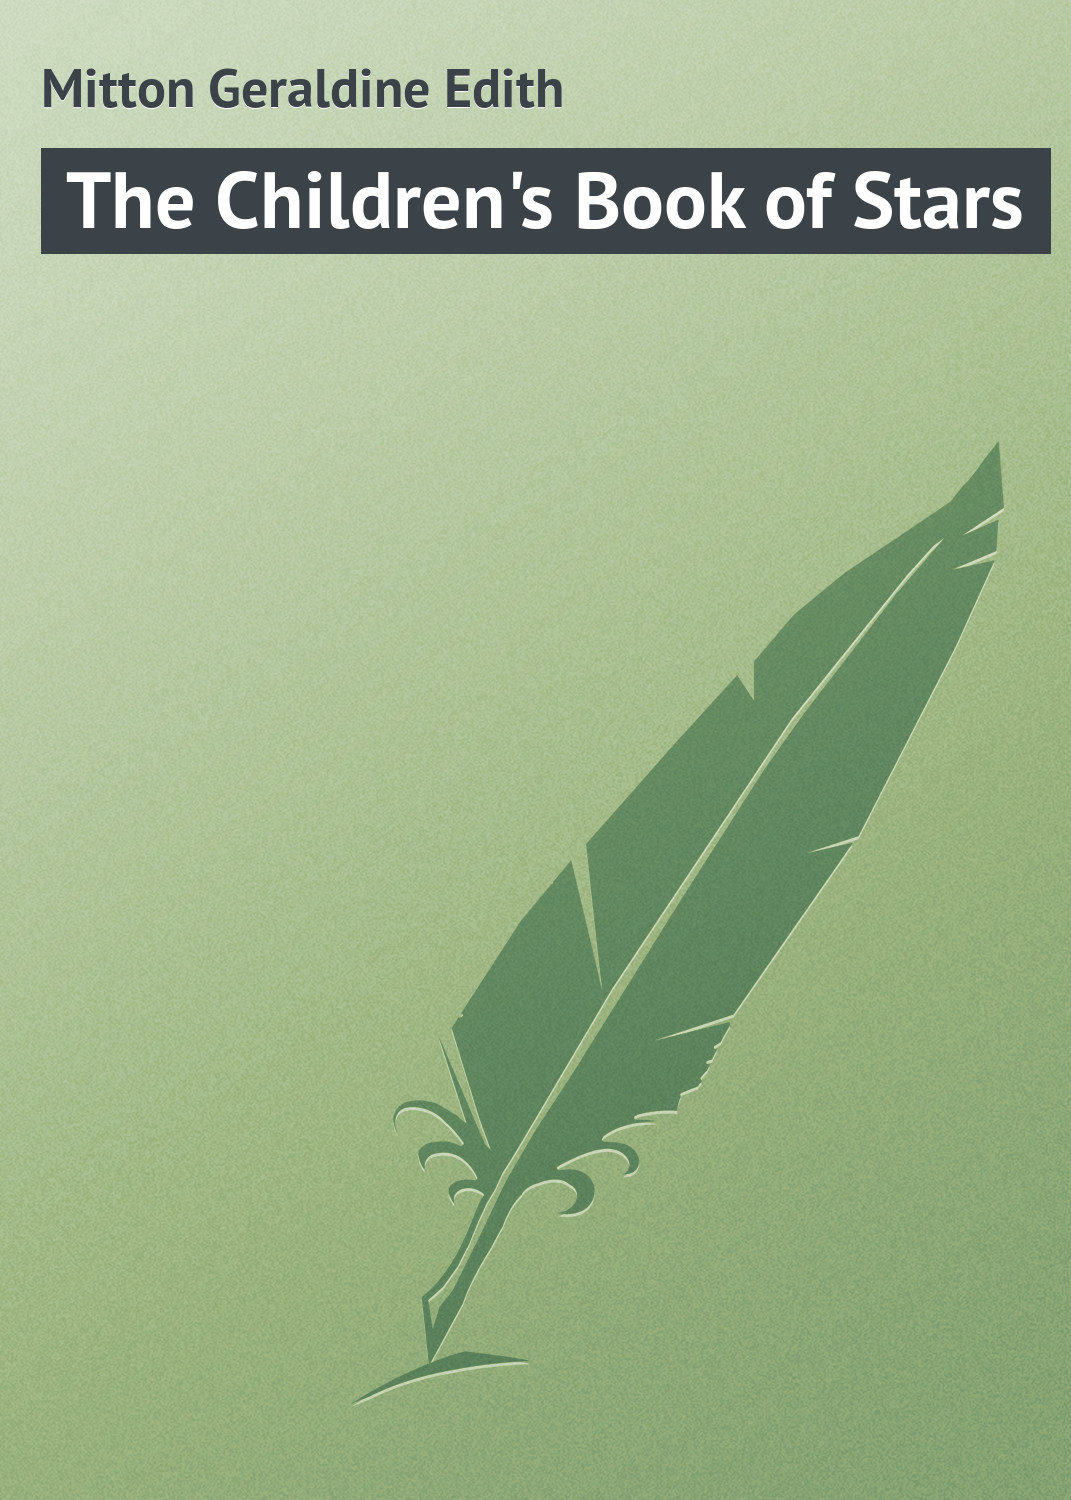 Mitton Geraldine Edith The Children's Book of Stars big book of stars